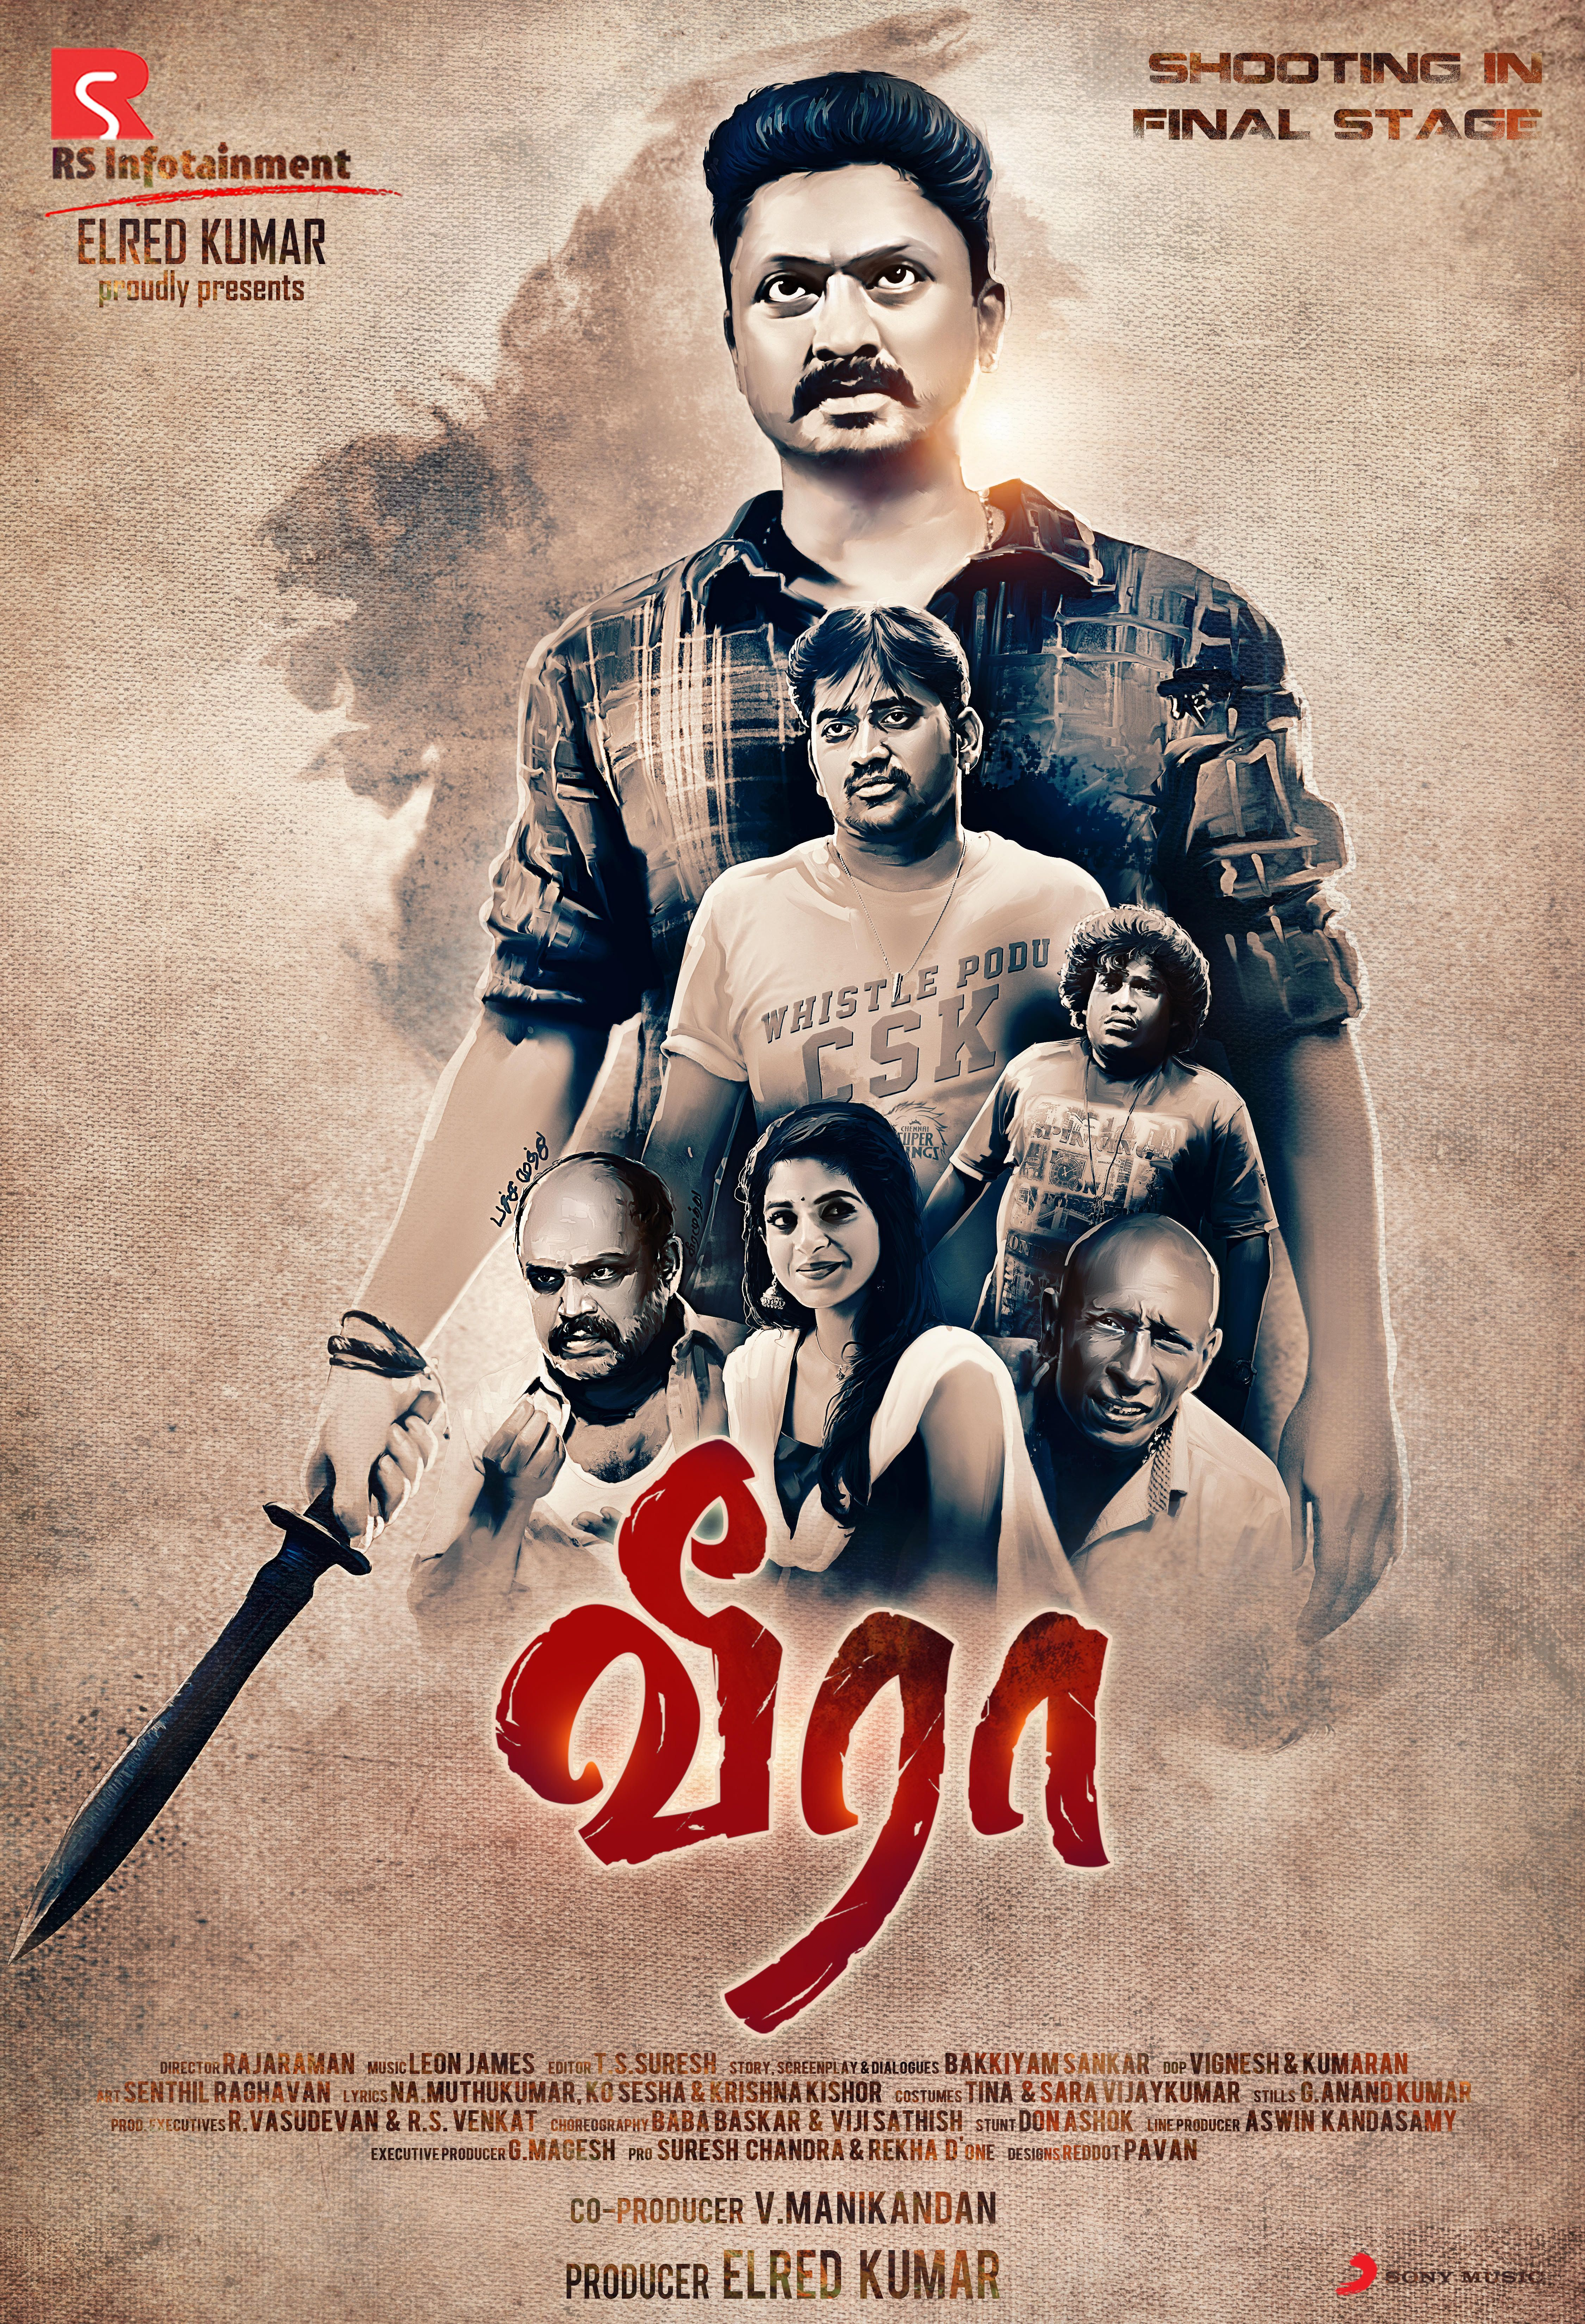 Pin By Vignesh Good On Vignesh Vv In 2020 Full Movies Streaming Movies Online Tamil Movies